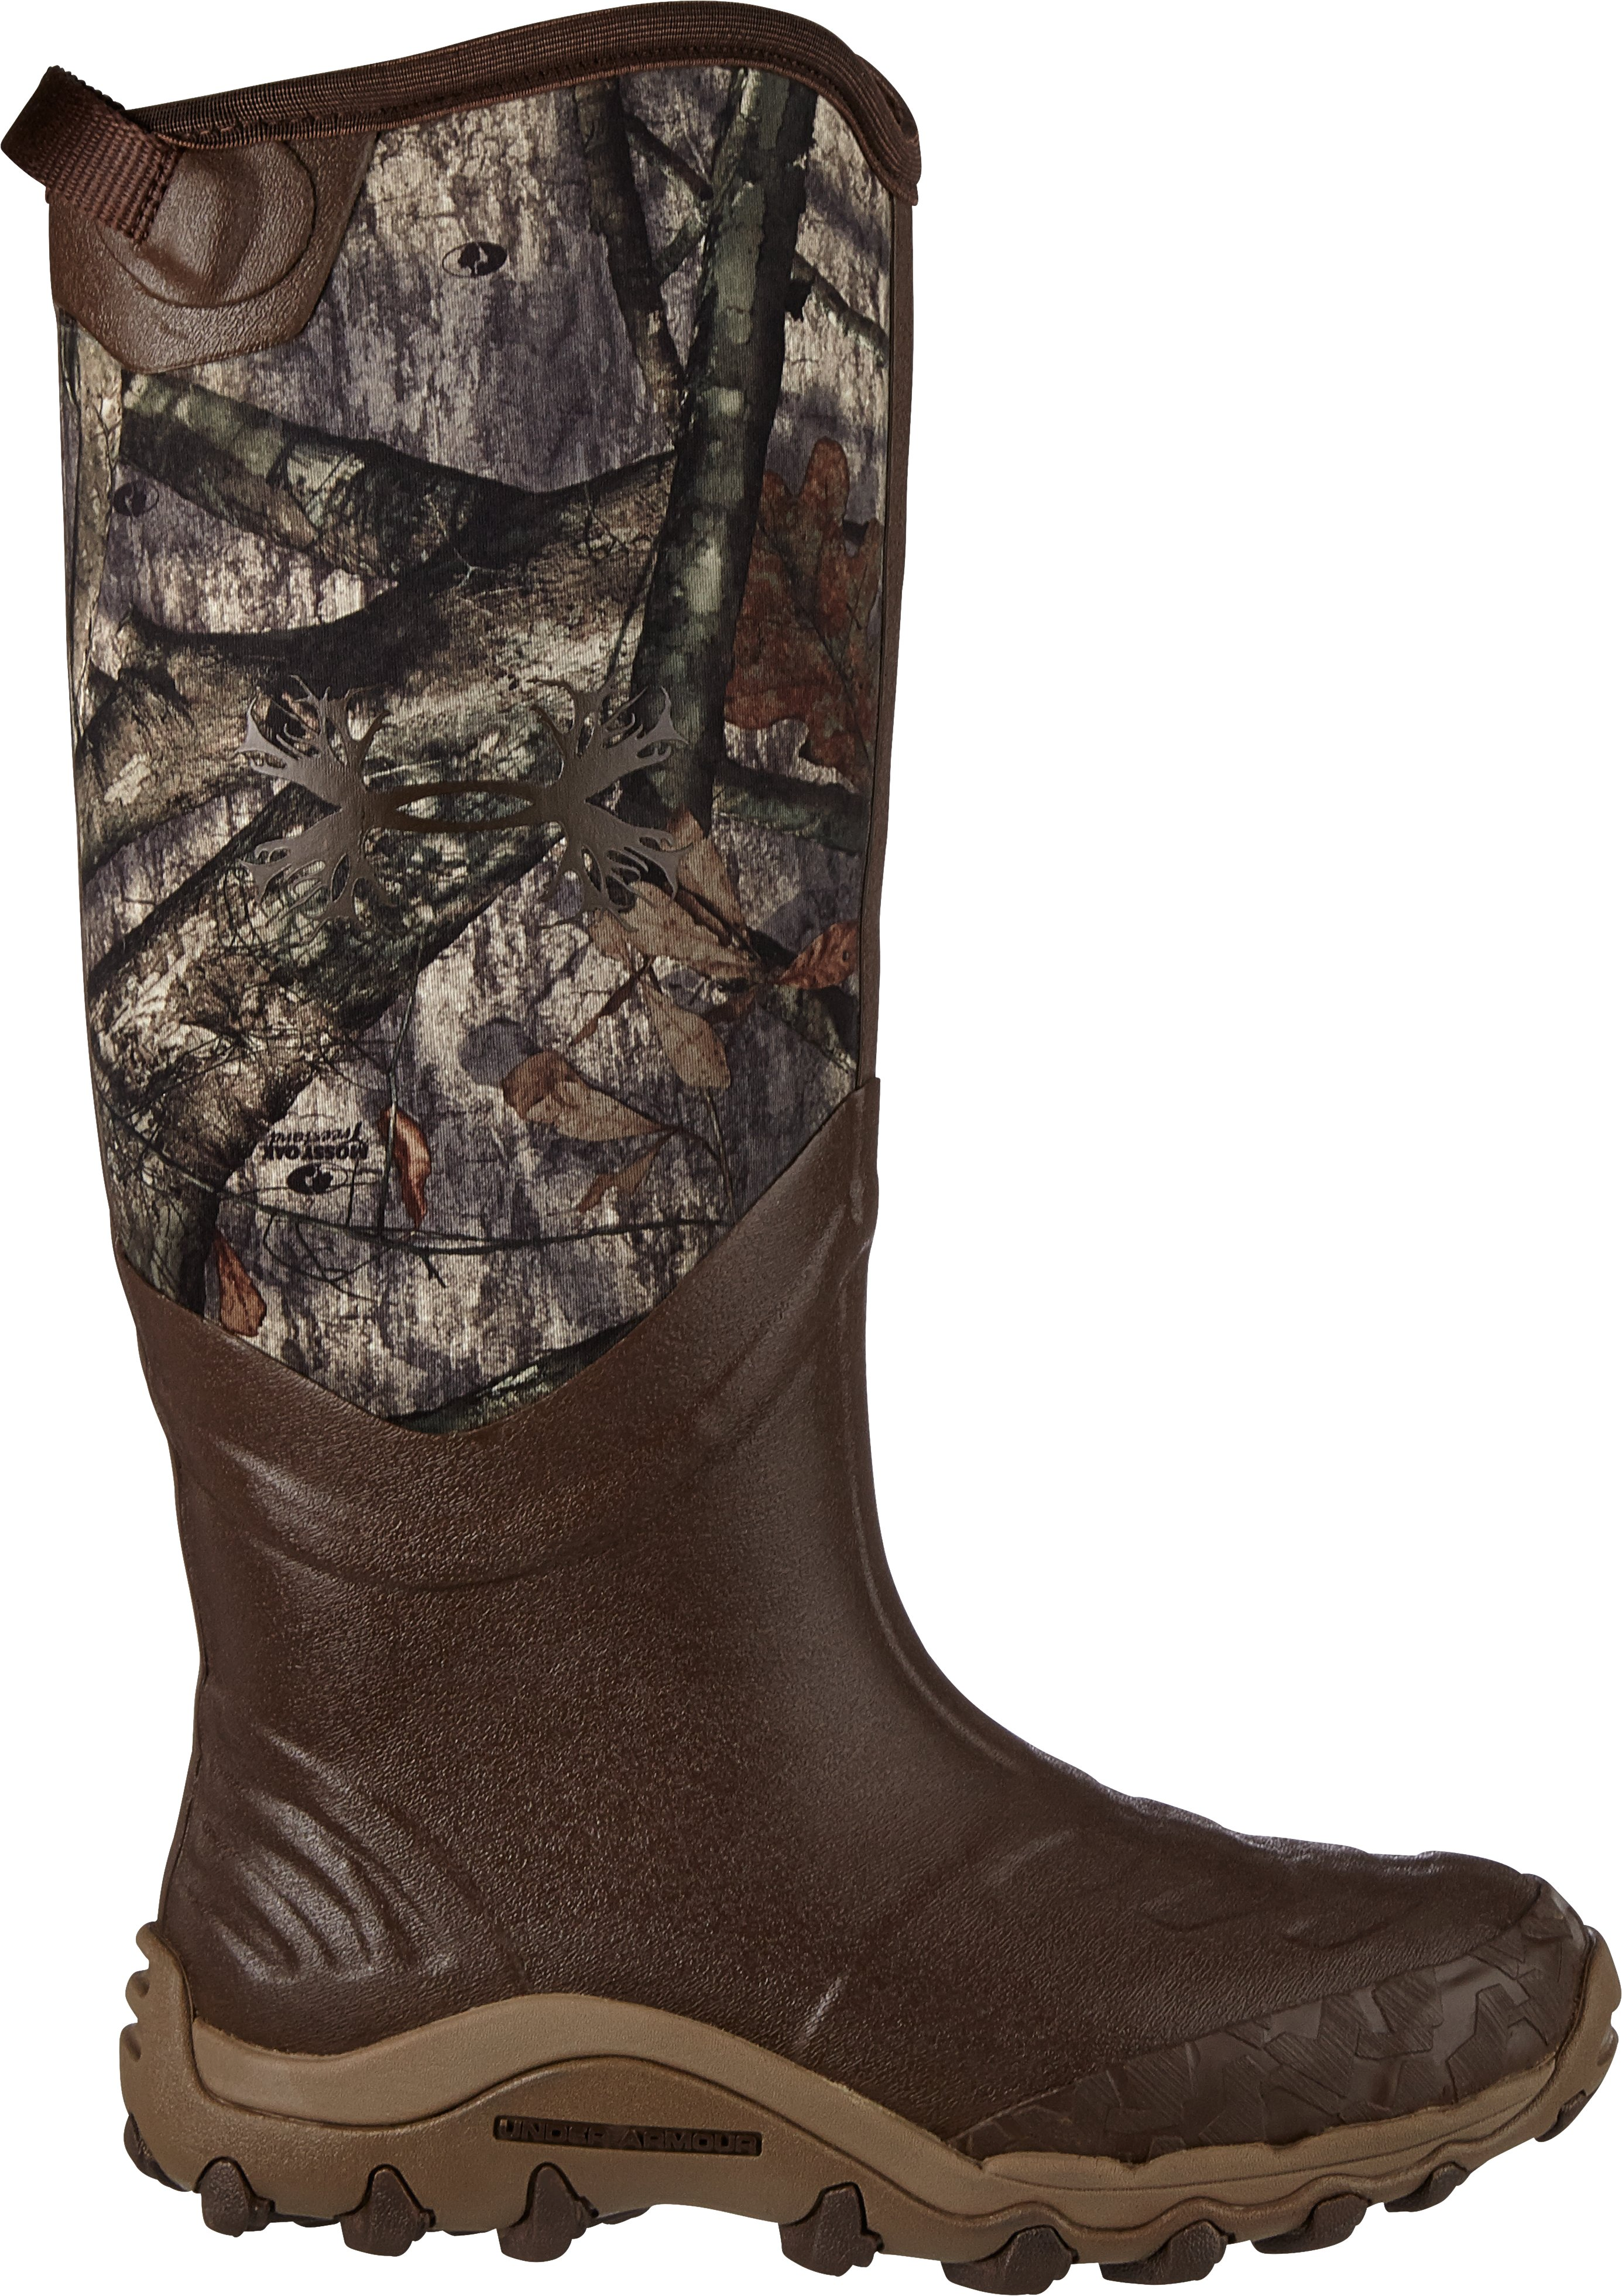 Men's UA H.A.W. Hunting Boots, Mossy Oak Treestand, zoomed image